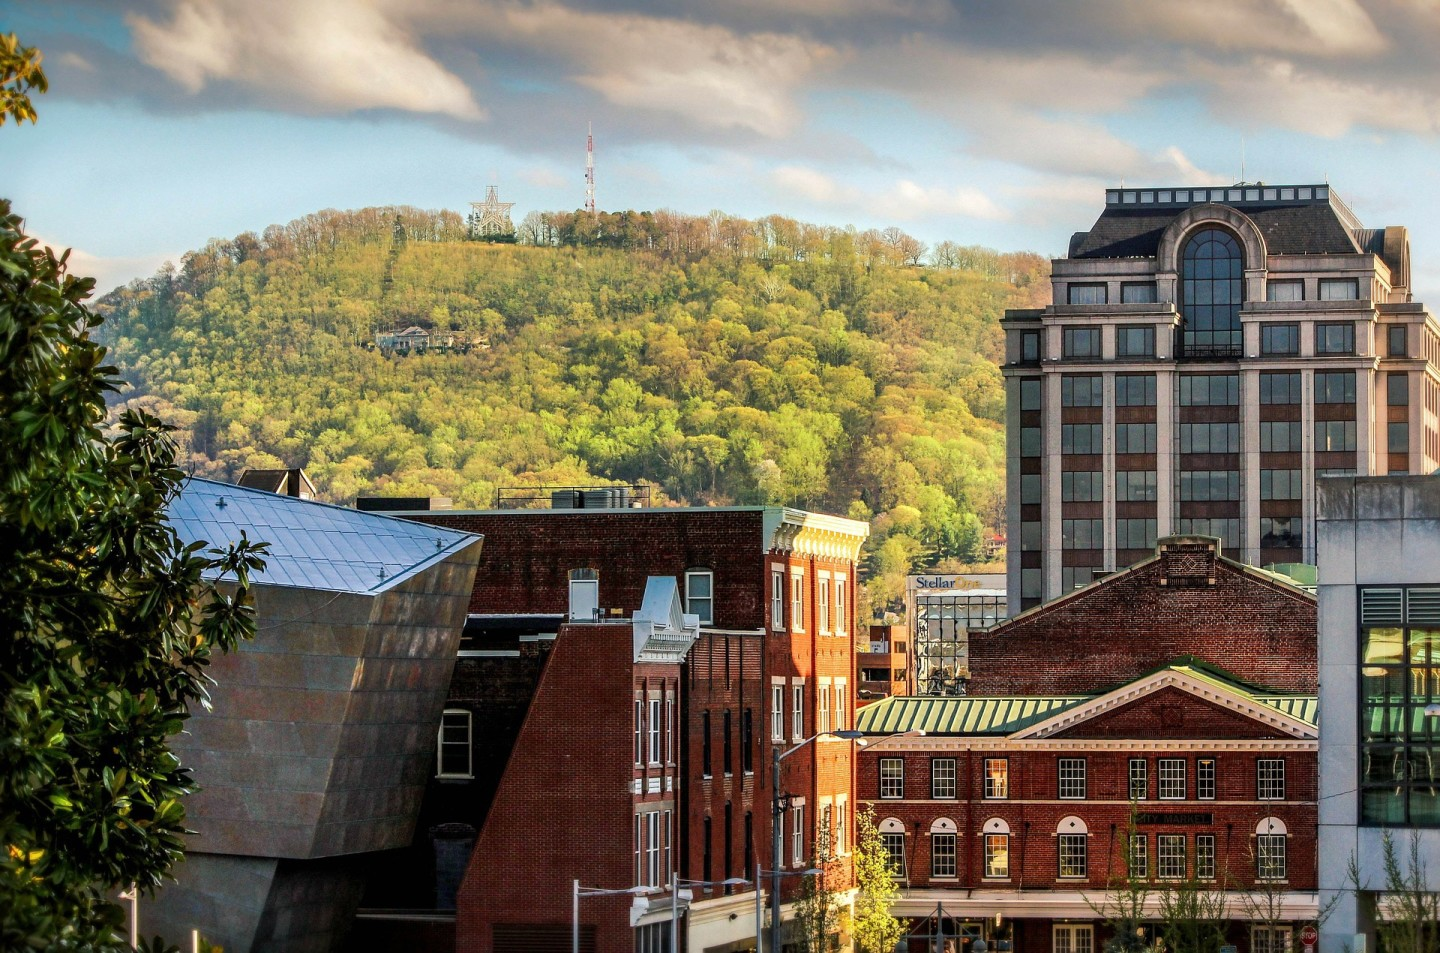 Roanoke, Virginia cityscape - tucked in the Appalachian mountains